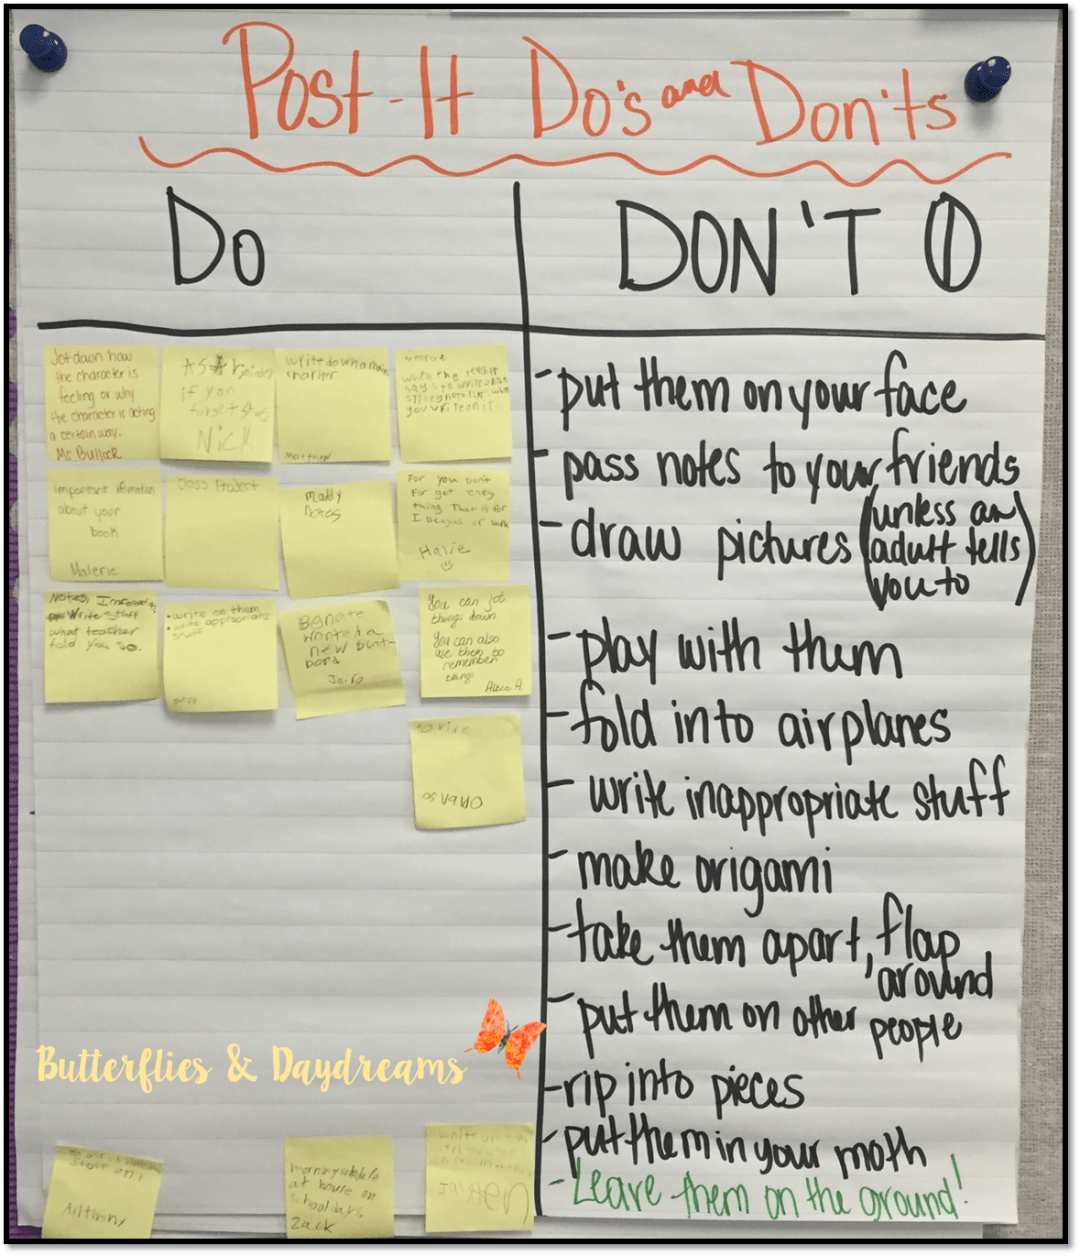 Post It Do's and Don'ts